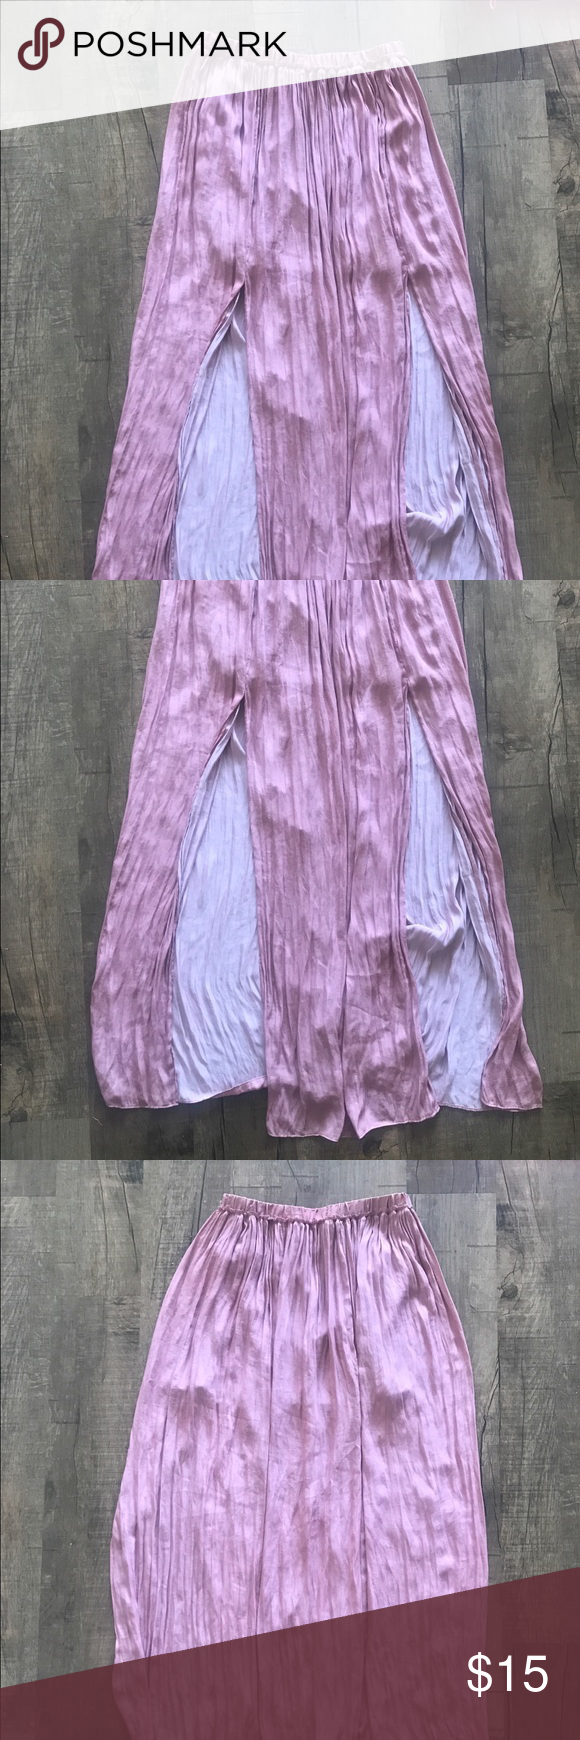 Pink mauve Forever 21 flows Skirt with slits Flowy pink skirt with slits from forever 21- Forever 21 Skirts Maxi